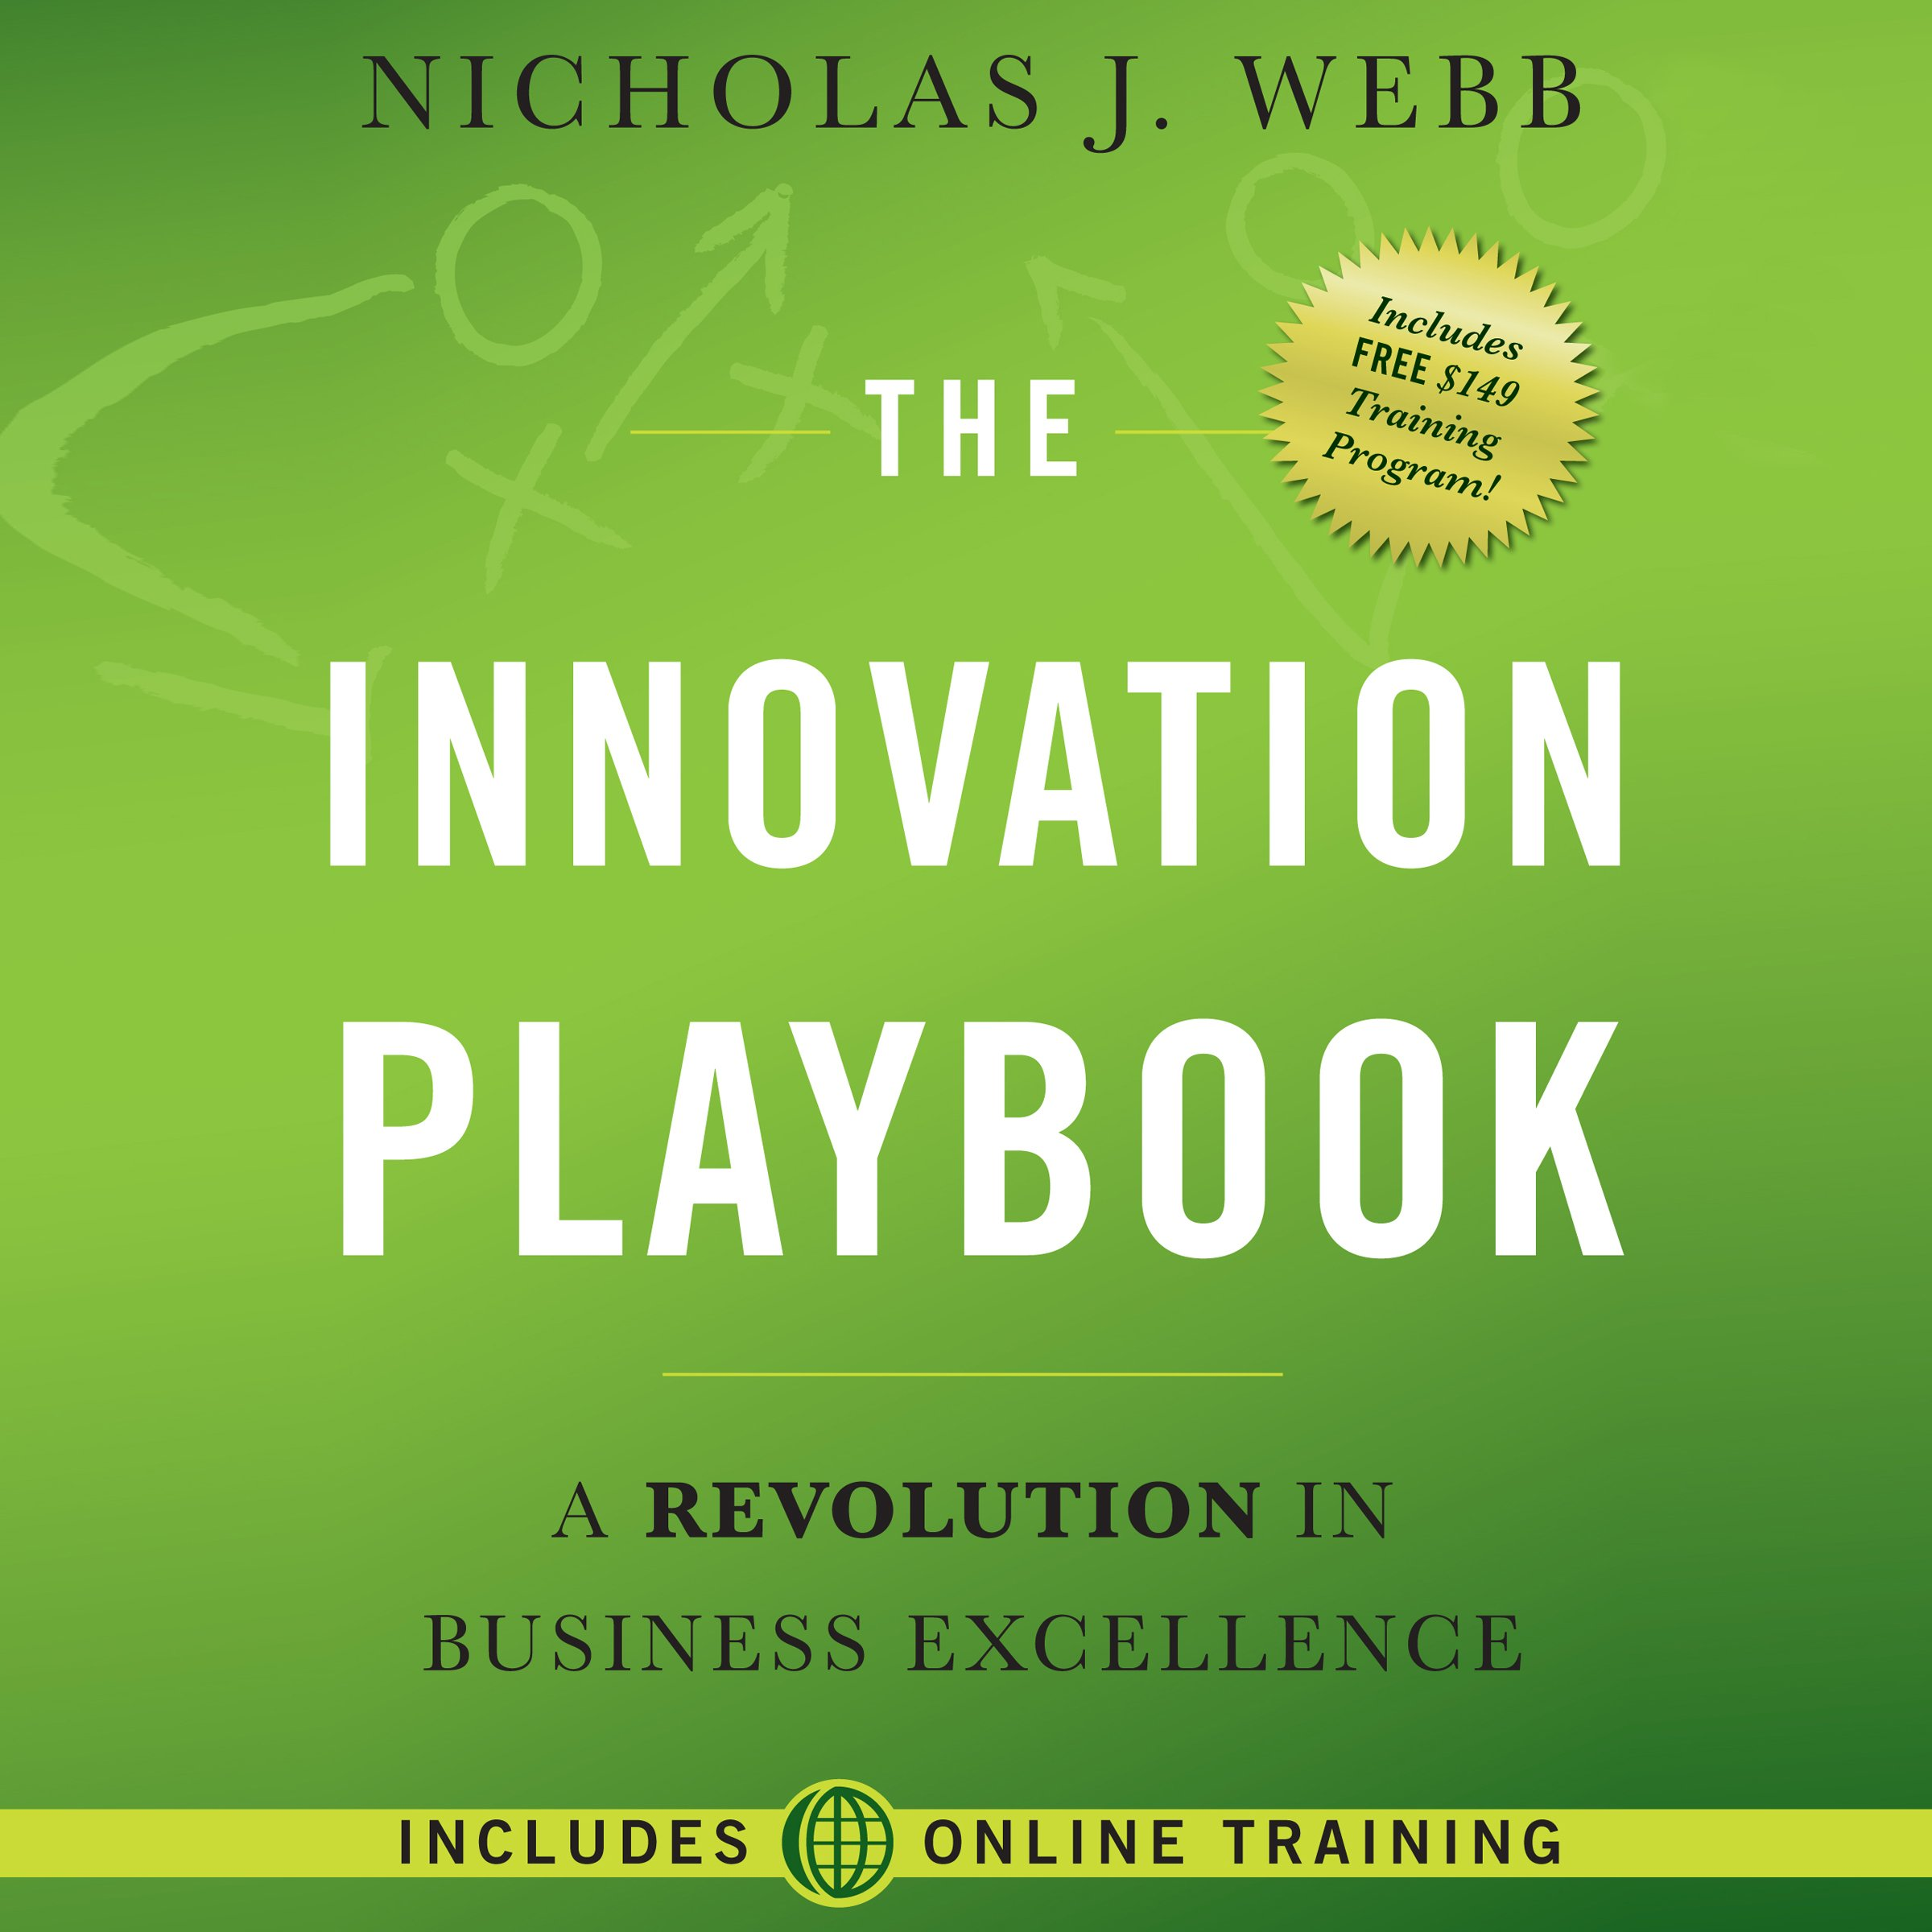 The Innovation Playbook: A Revolution in Business Excellence